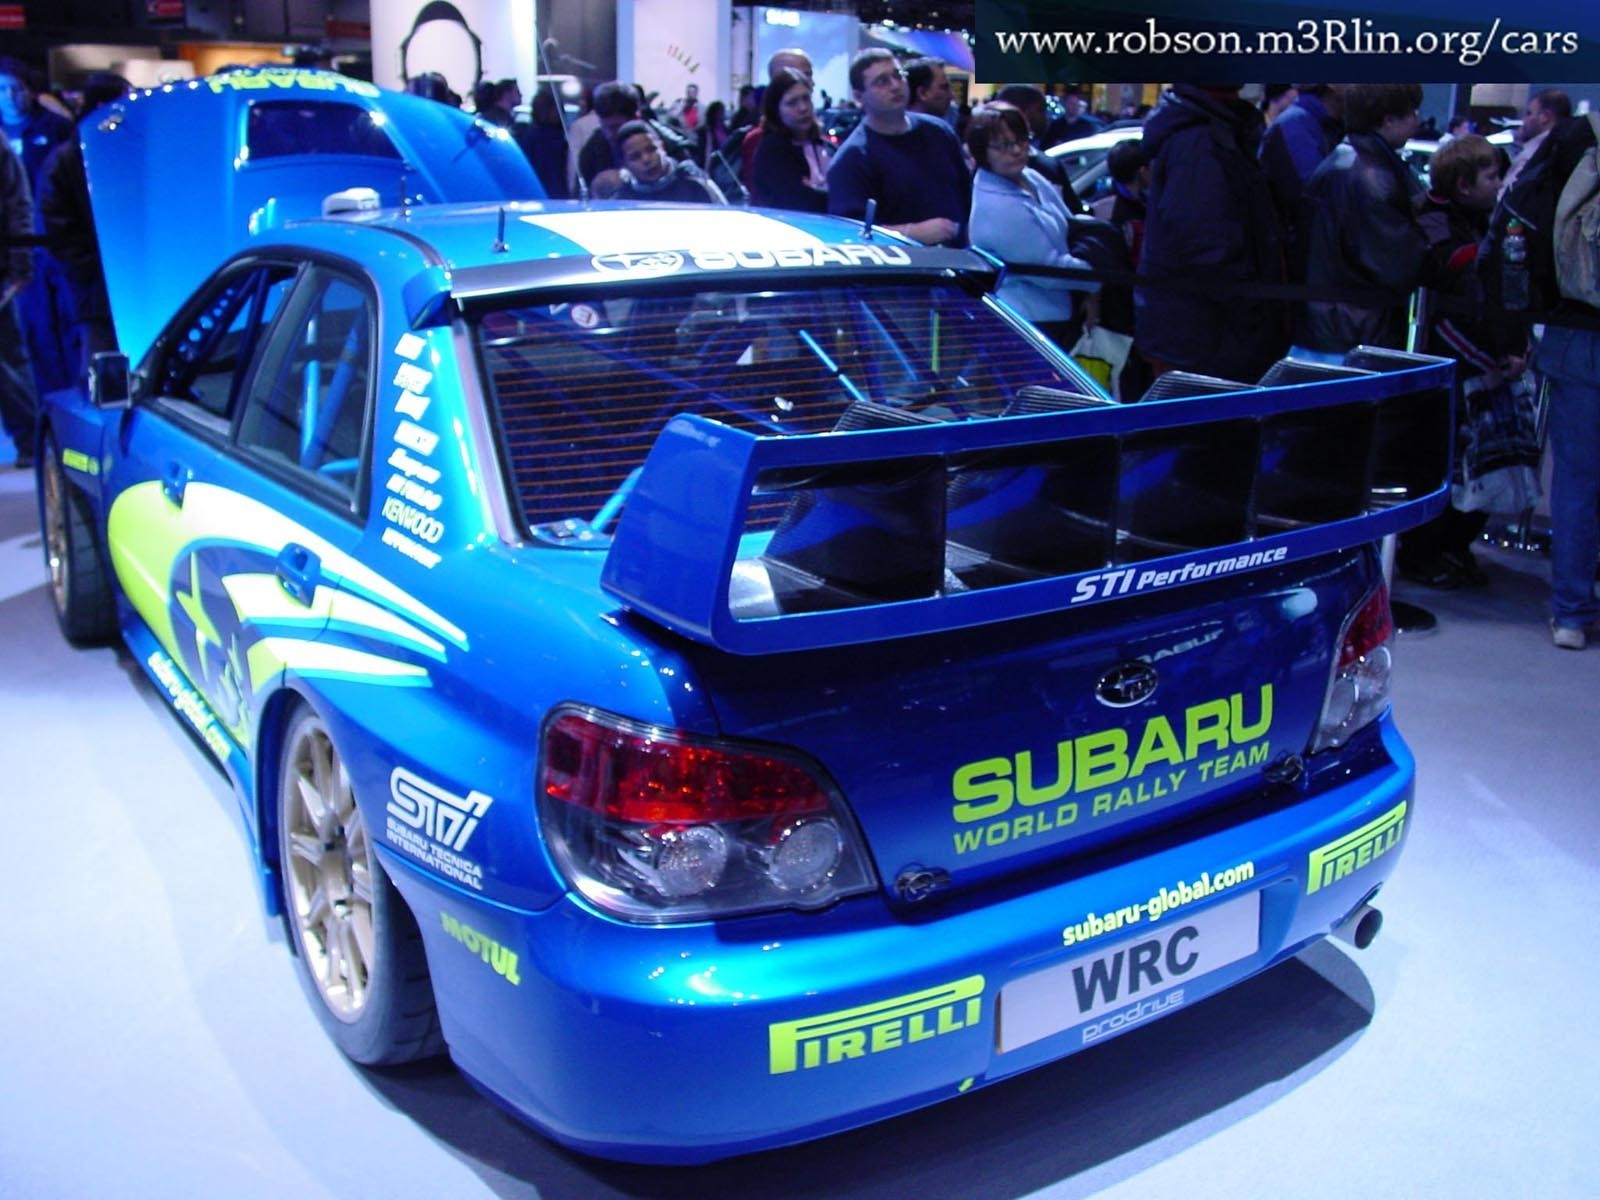 cars Subaru Impreza wrc HD Wallpaper